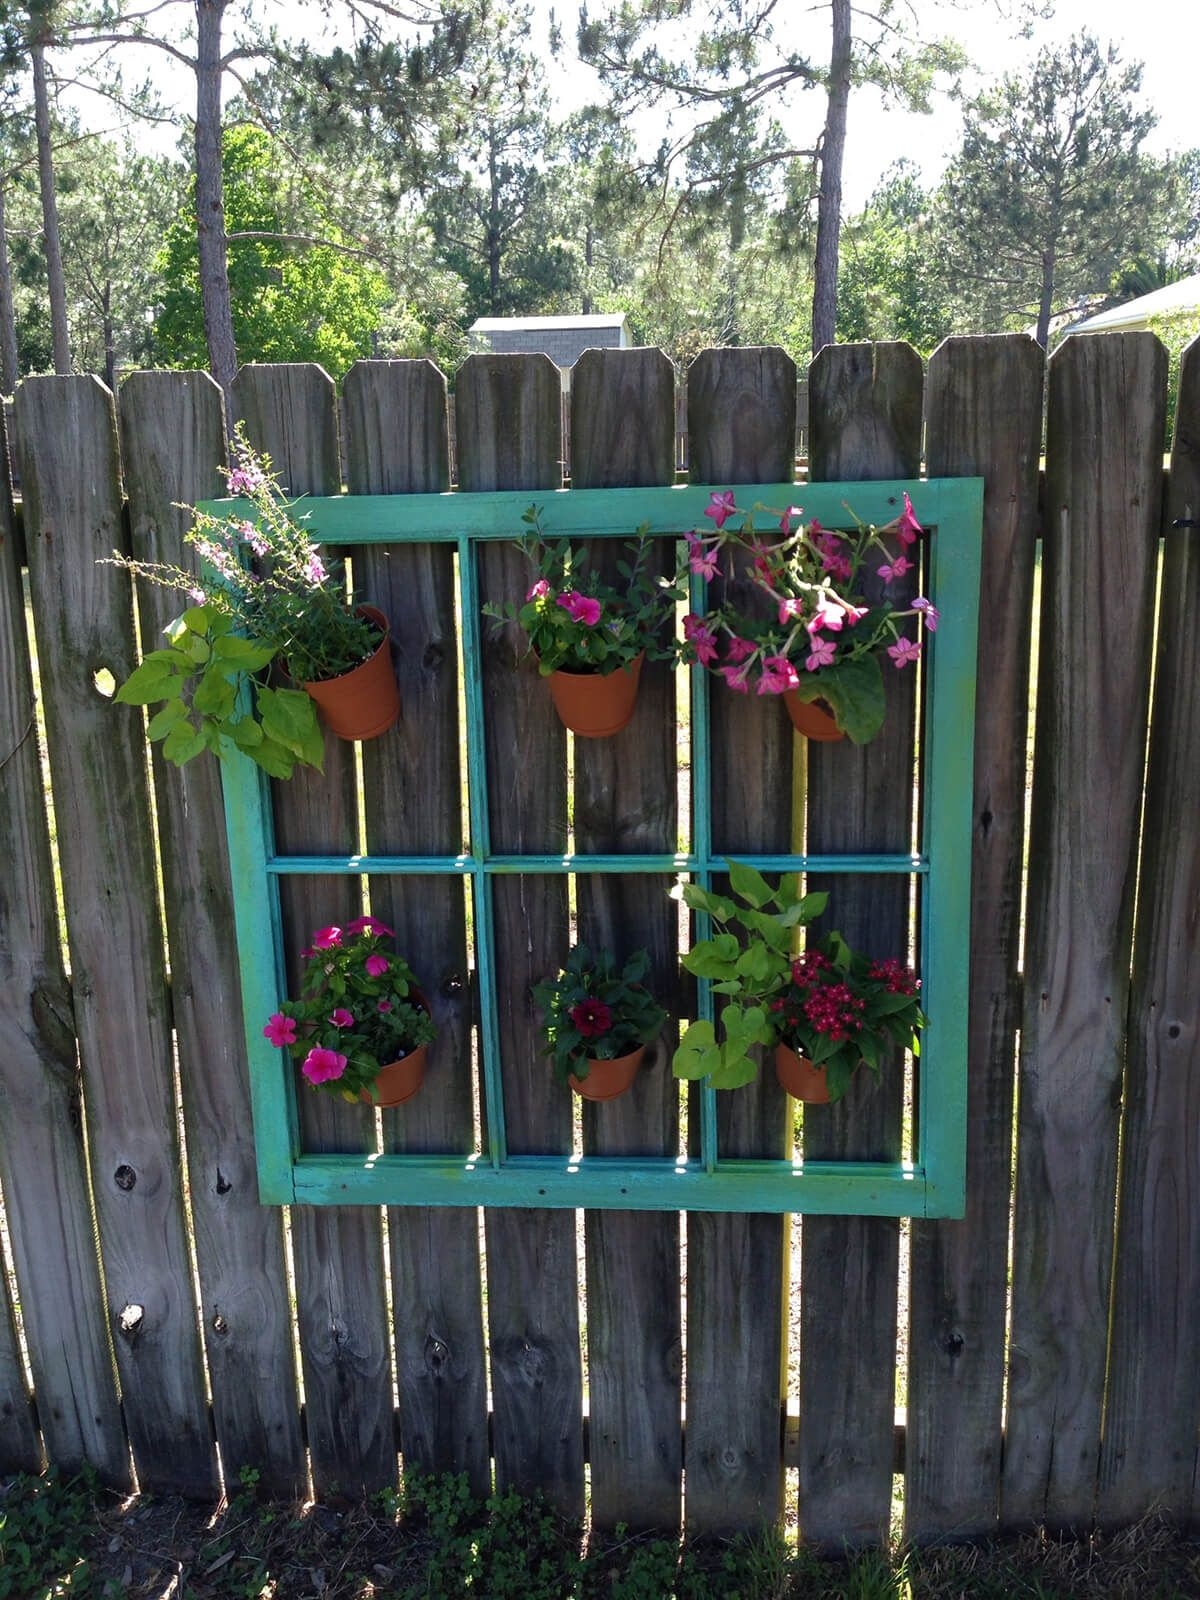 32 Fun And Inspiring Old Window Outdoor Decor Ideas To Make Your